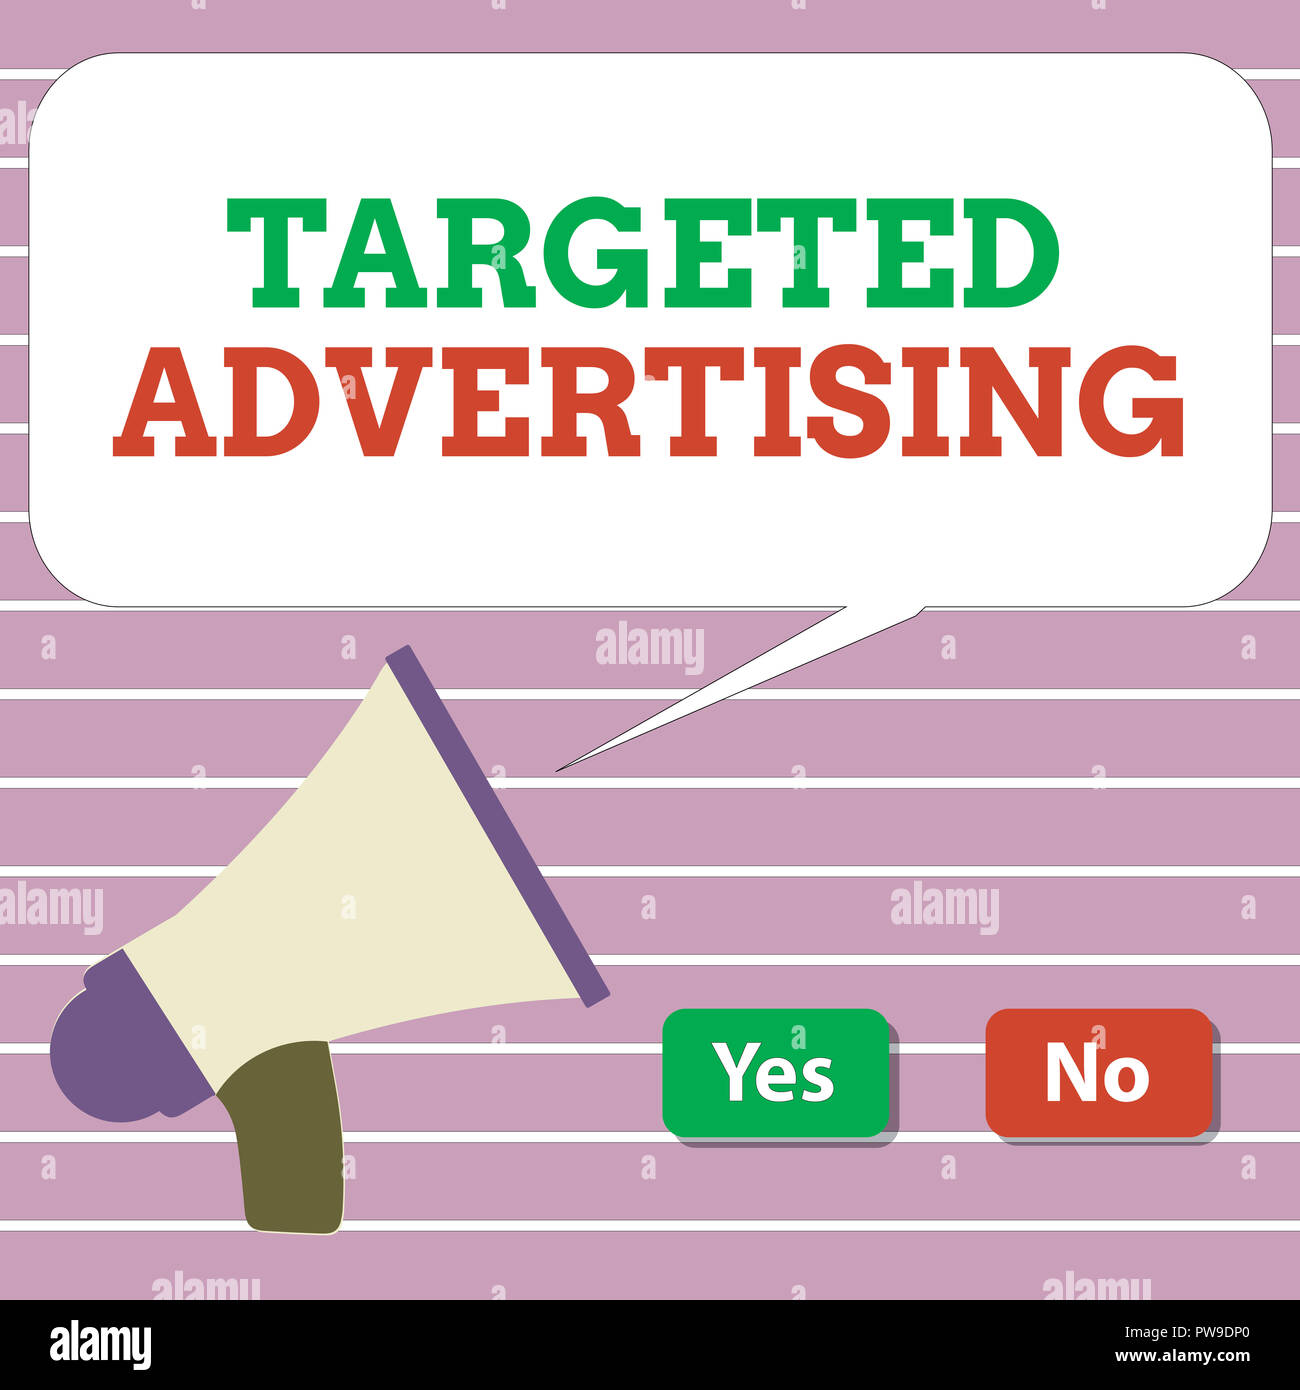 Online Ads Stock Photos & Online Ads Stock Images - Alamy